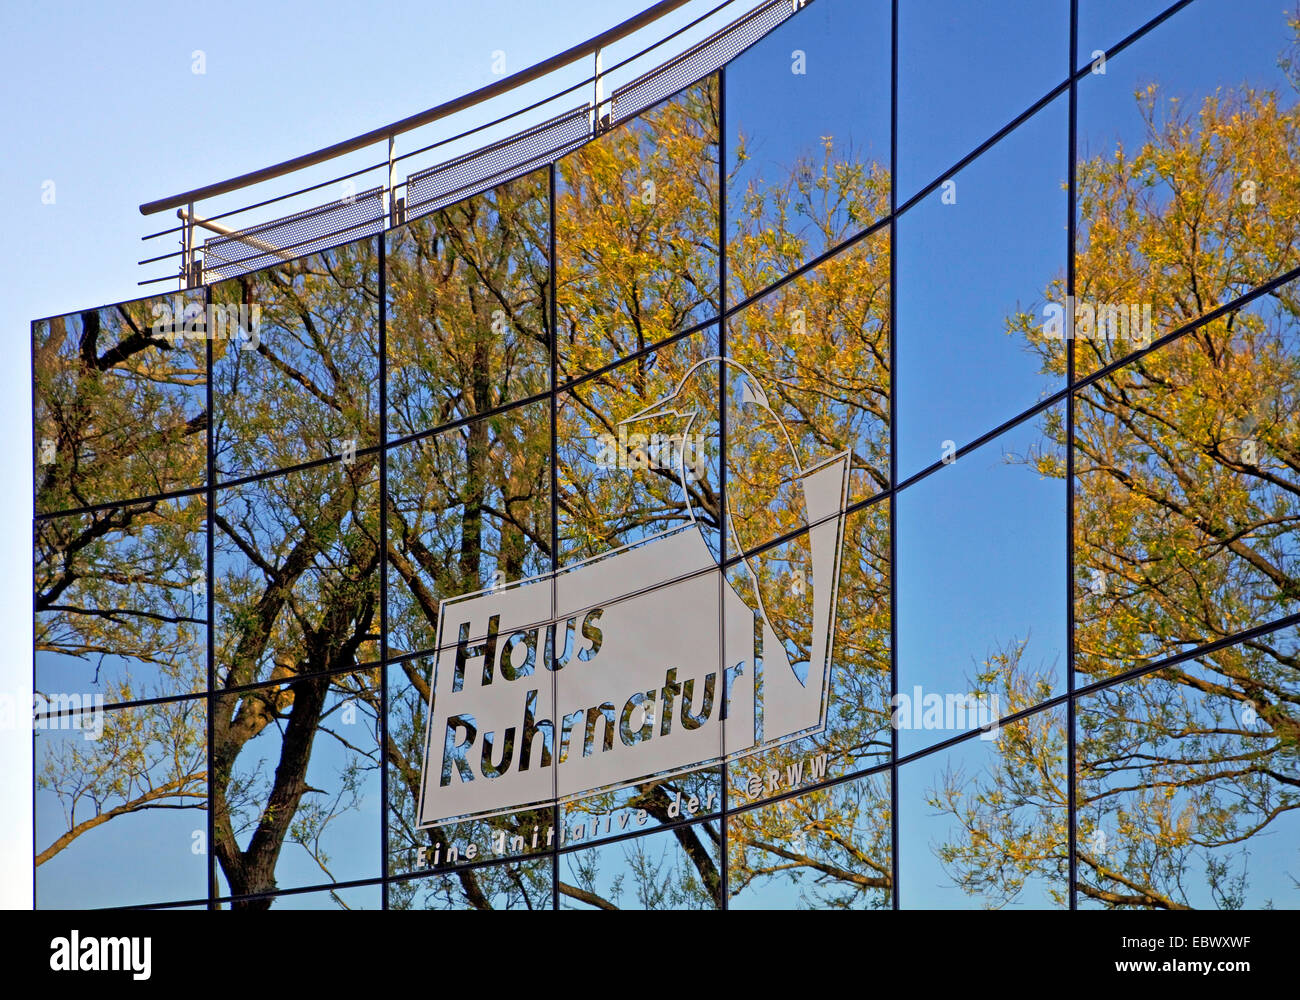 reflections in the glas cladding of House Ruhrnatur in Muelheim/Ruhr, Germany, North Rhine-Westphalia, Ruhr Area, - Stock Image